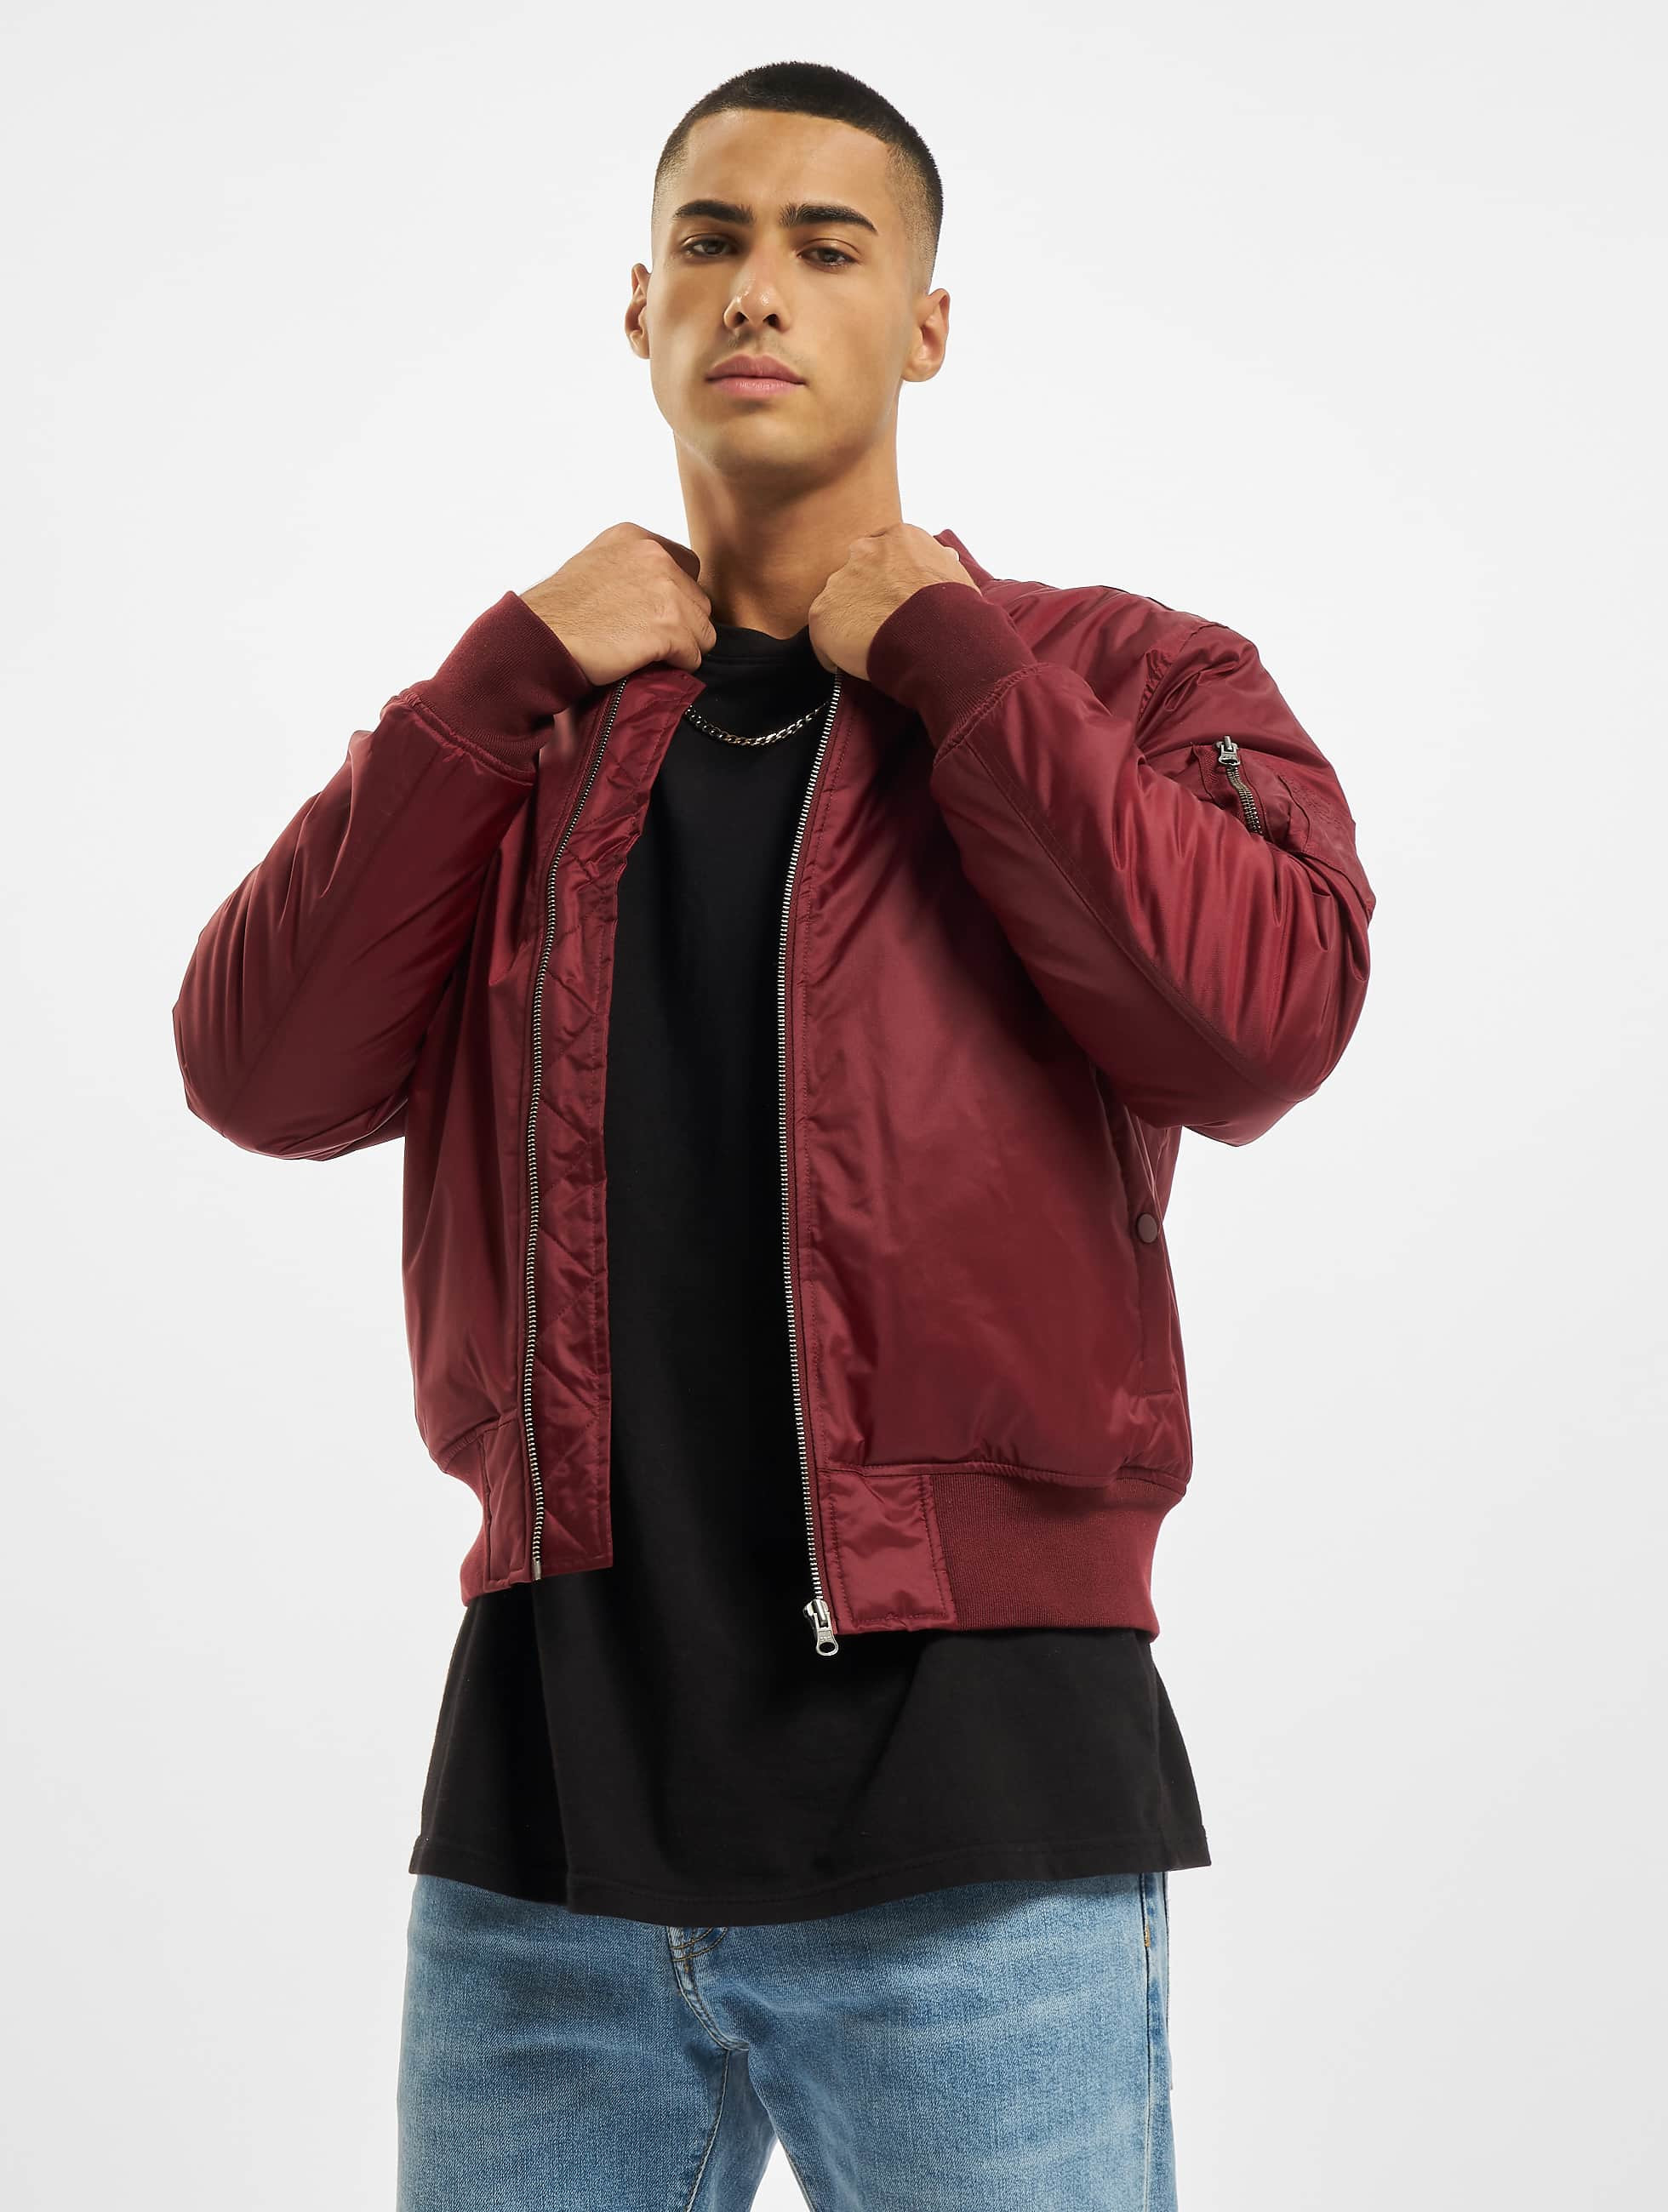 Nike Fleece Kinder Urban Classics Herren Bomberjacke Basic In Rot 201943